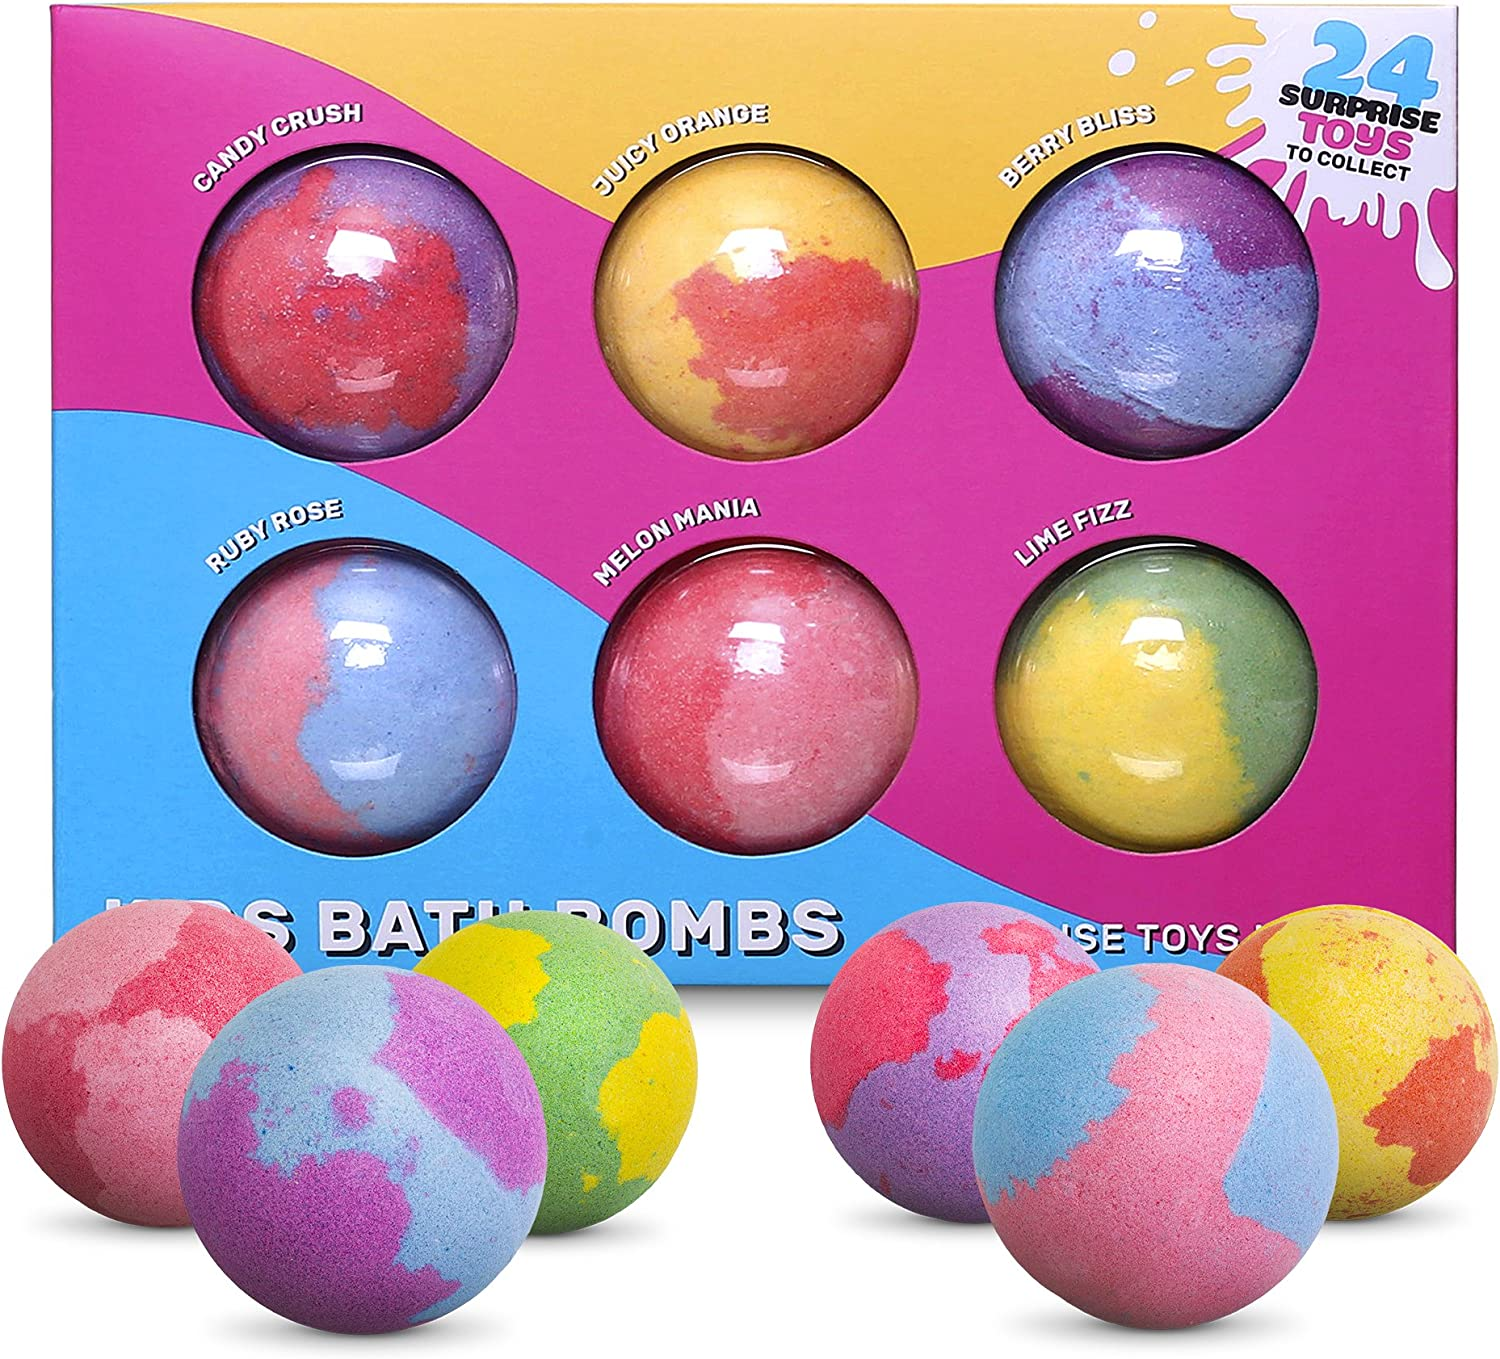 Bath Bombs with Toys Inside for Kids Toddlers Ages Over 3 Years Old 6 Pack Fizzies Safe Gentle Spa Balls Surprise Toys Birthday Gift Set for Boys /& Girls